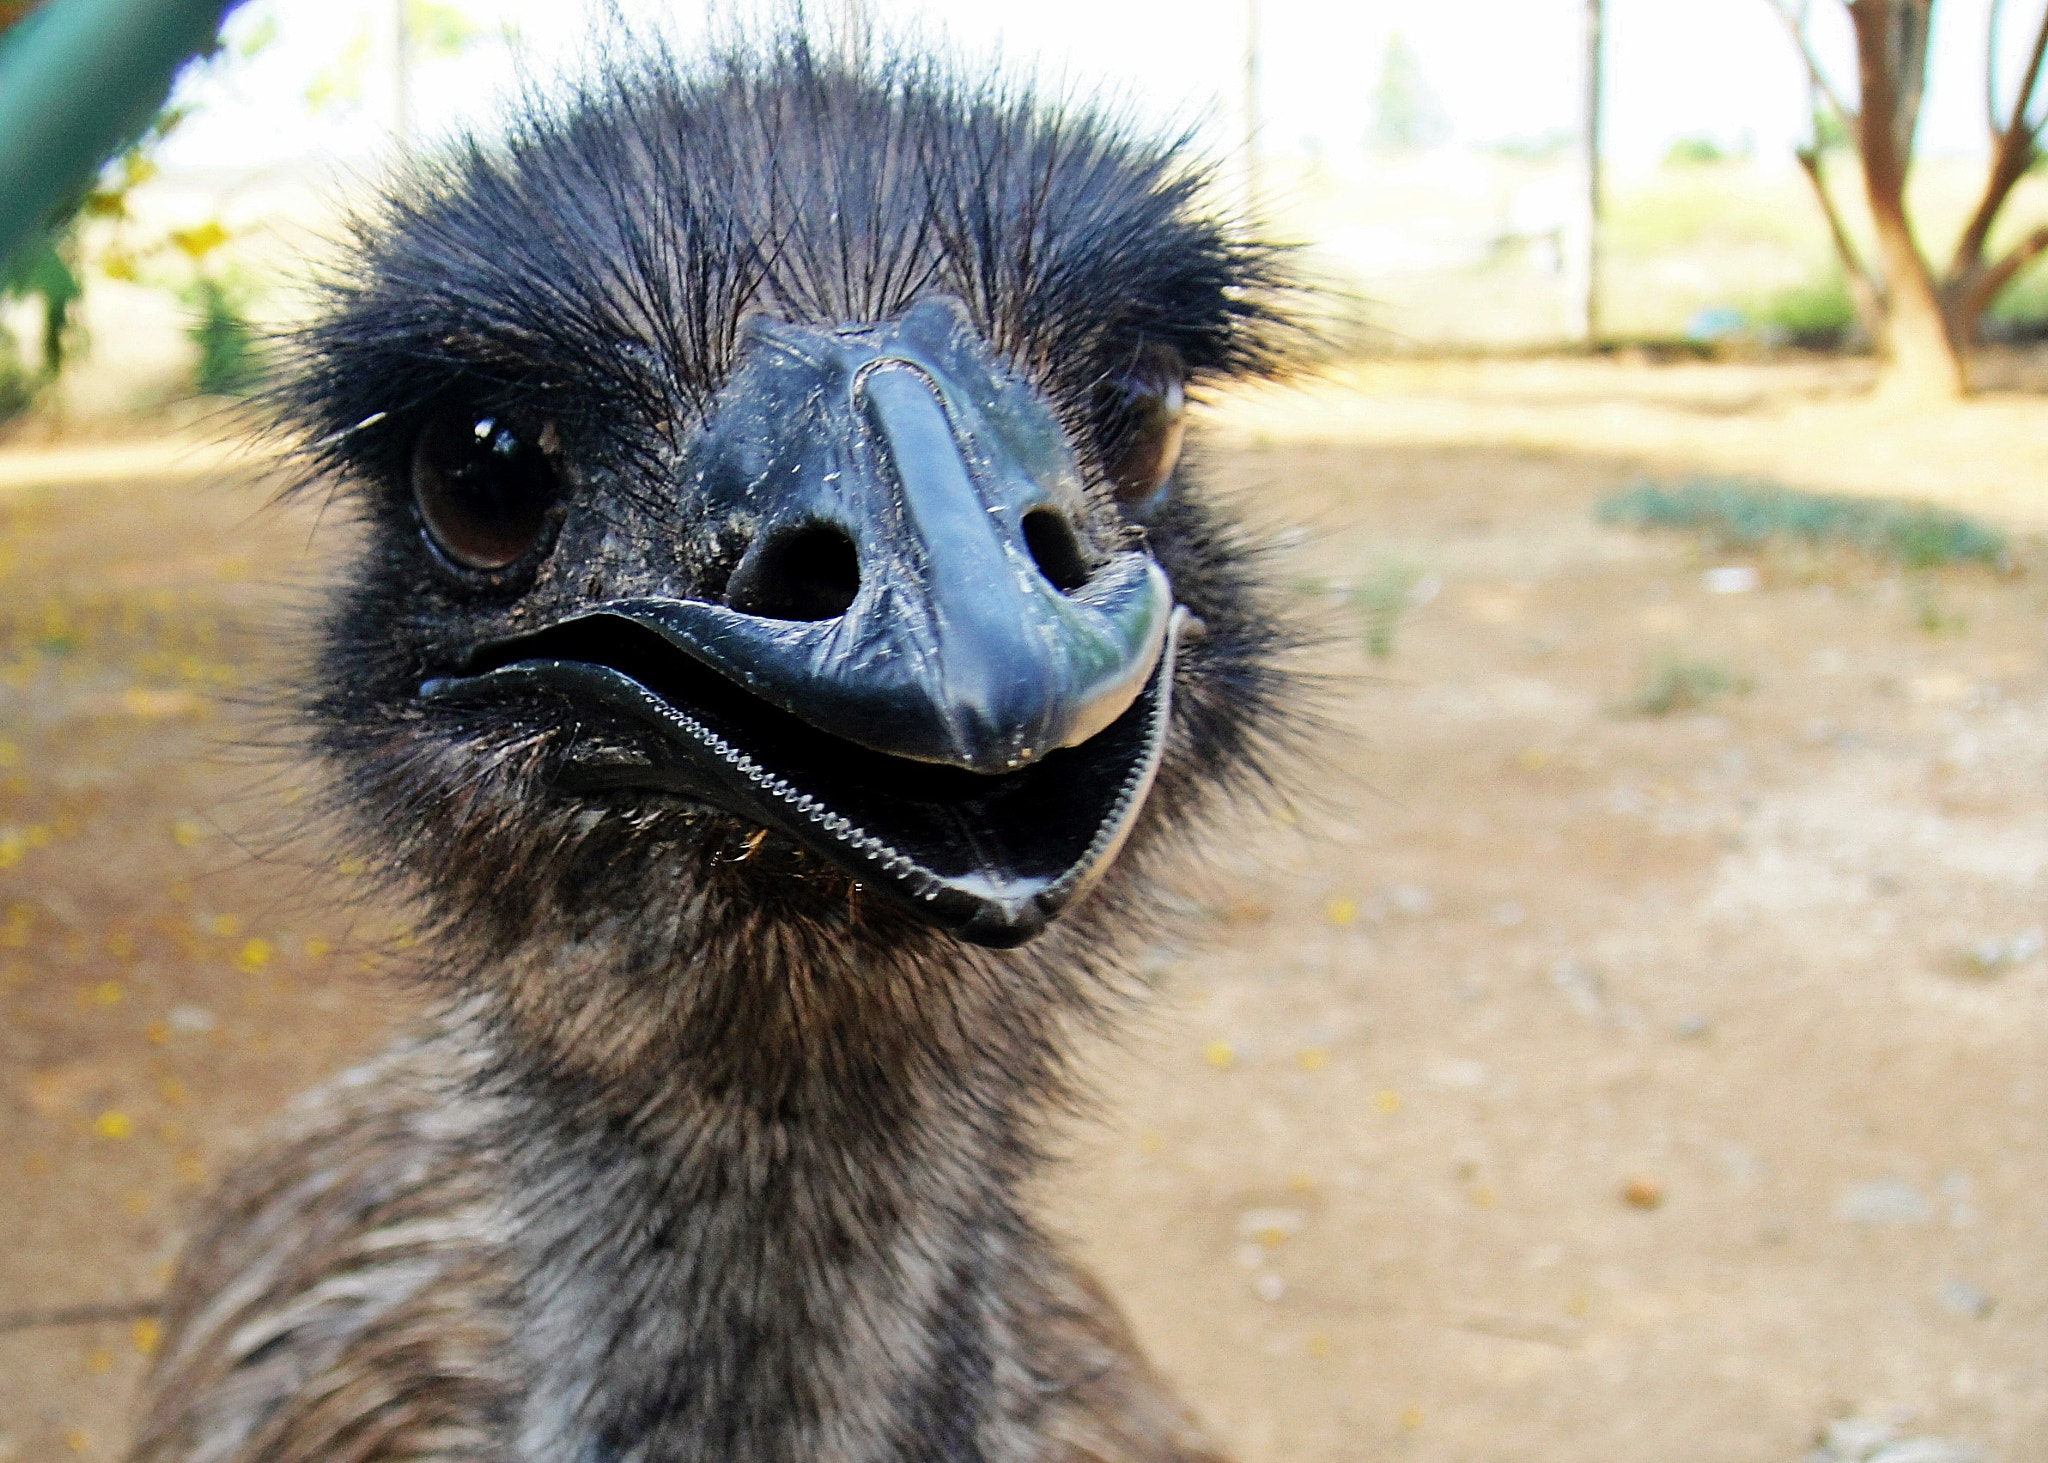 Photograph Young Emu! by Shereef Sherry on 500px